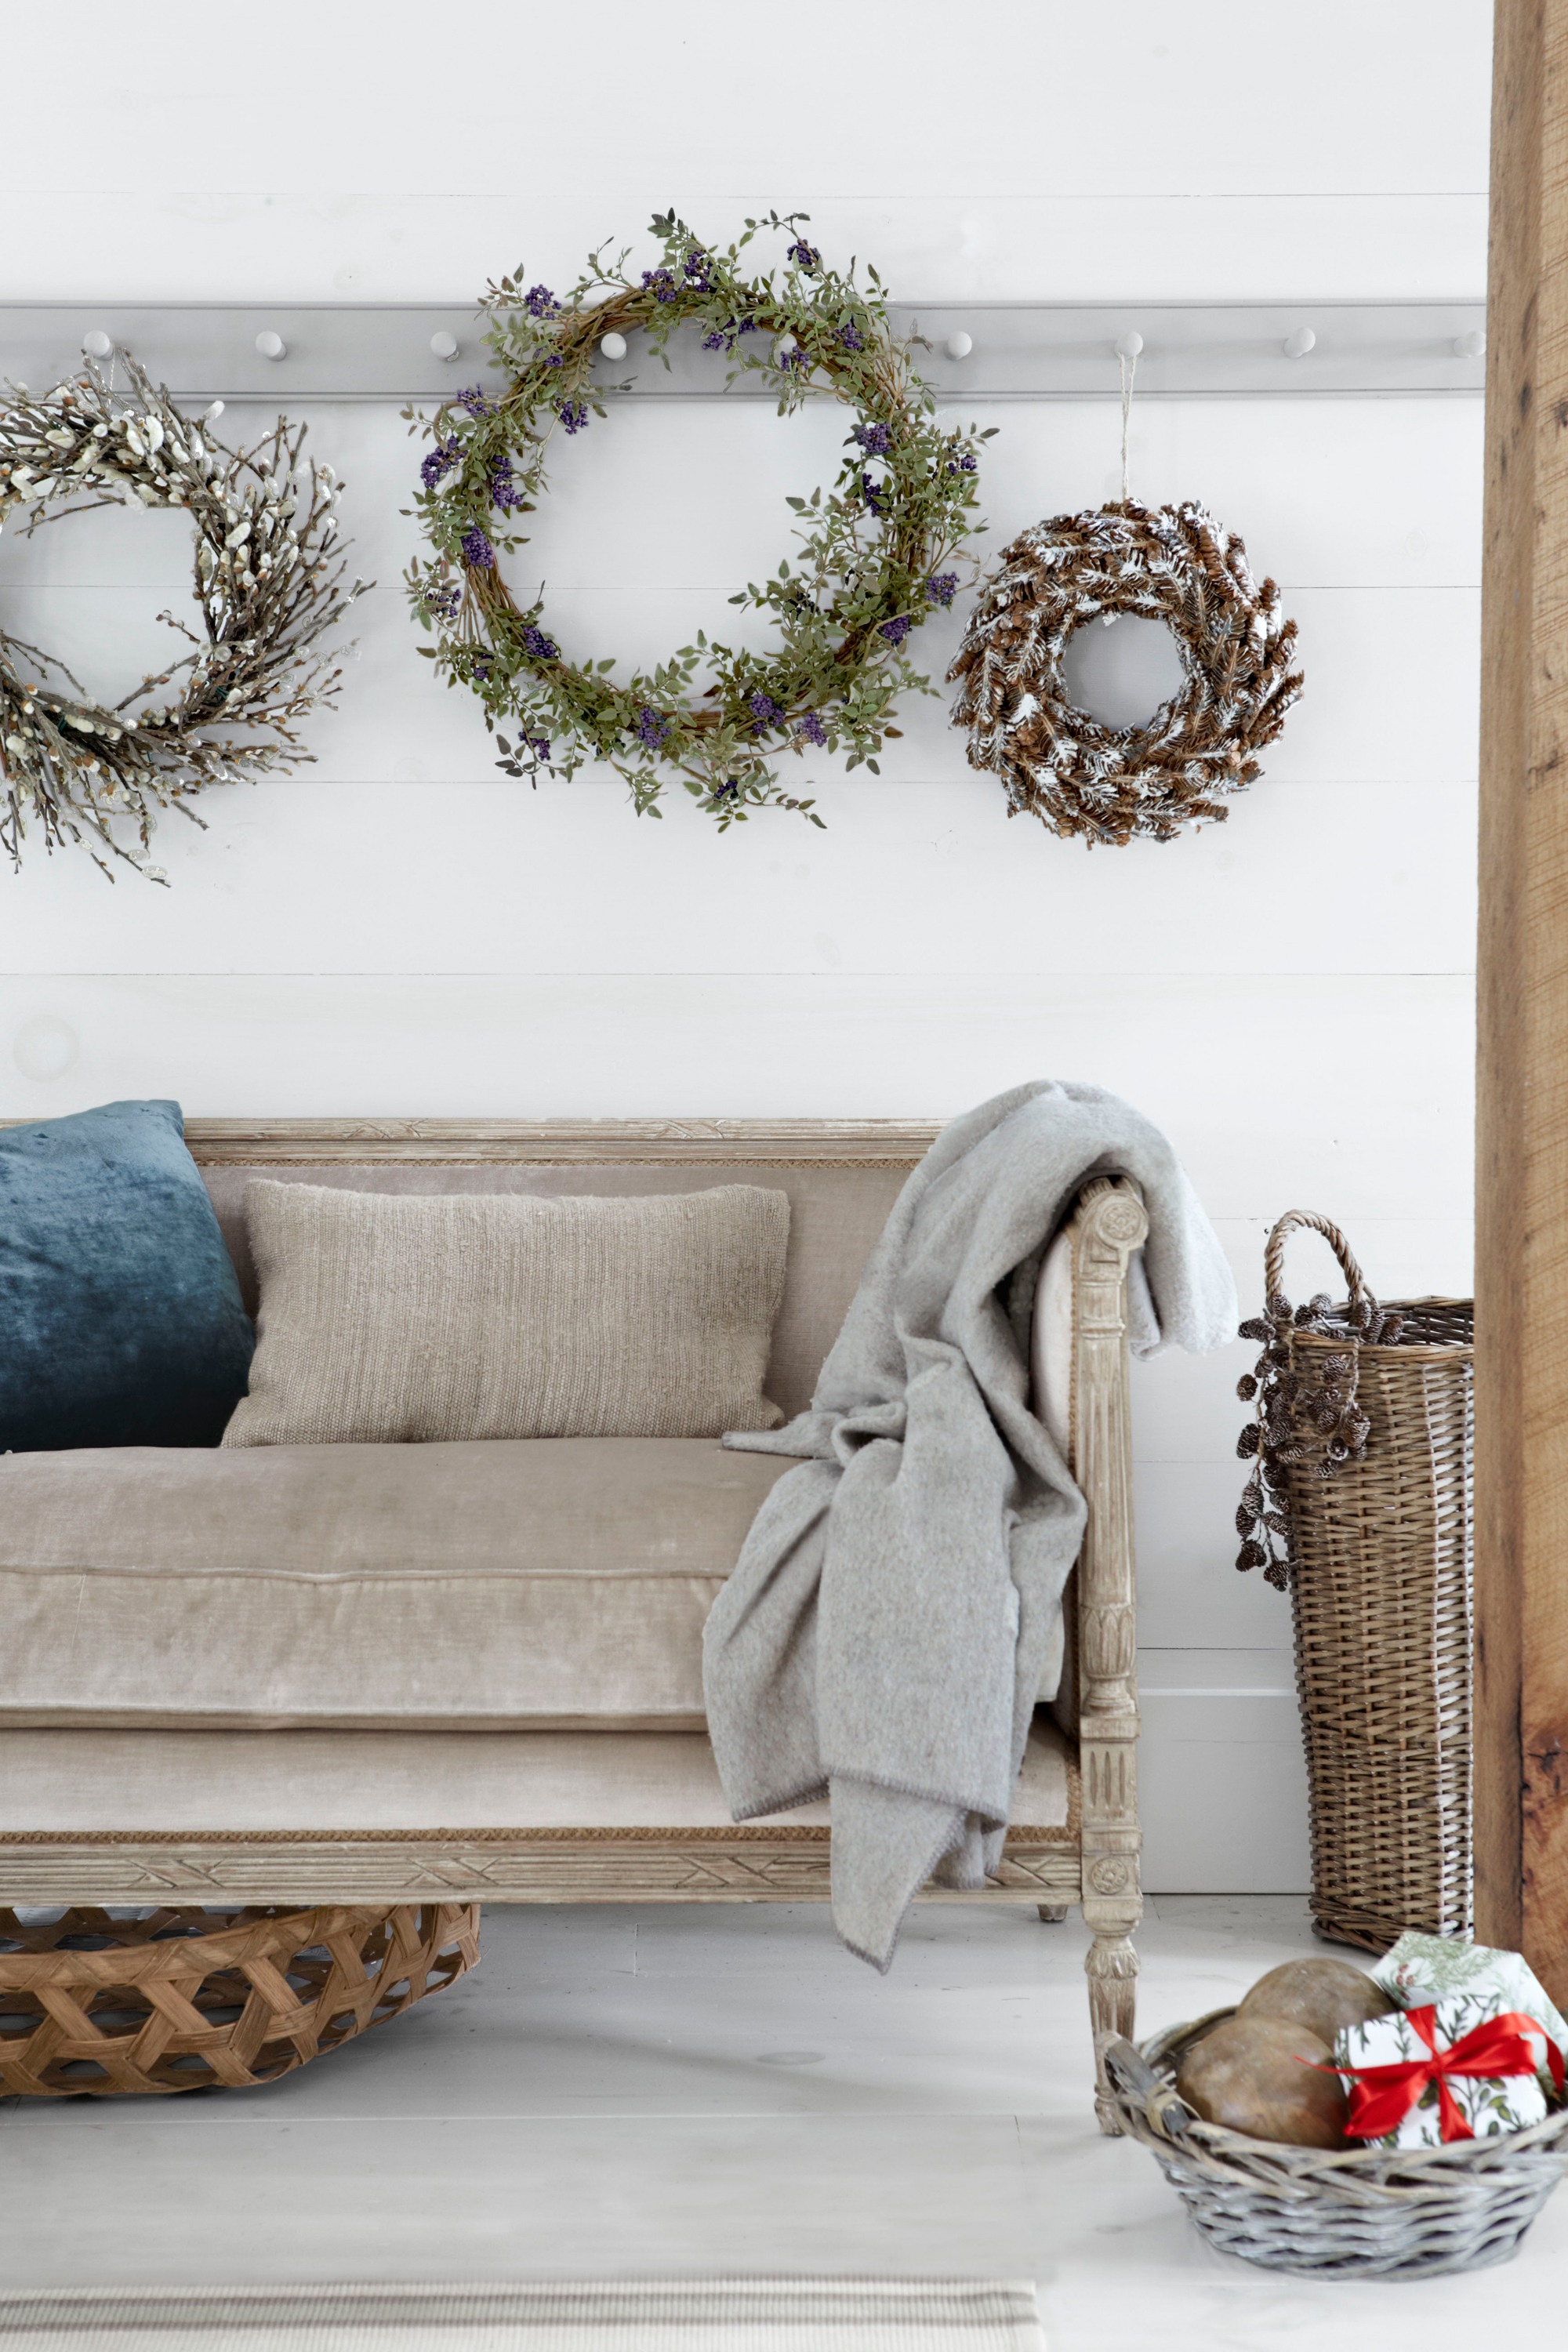 50 diy christmas wreath ideas how to make holiday wreaths crafts amipublicfo Gallery